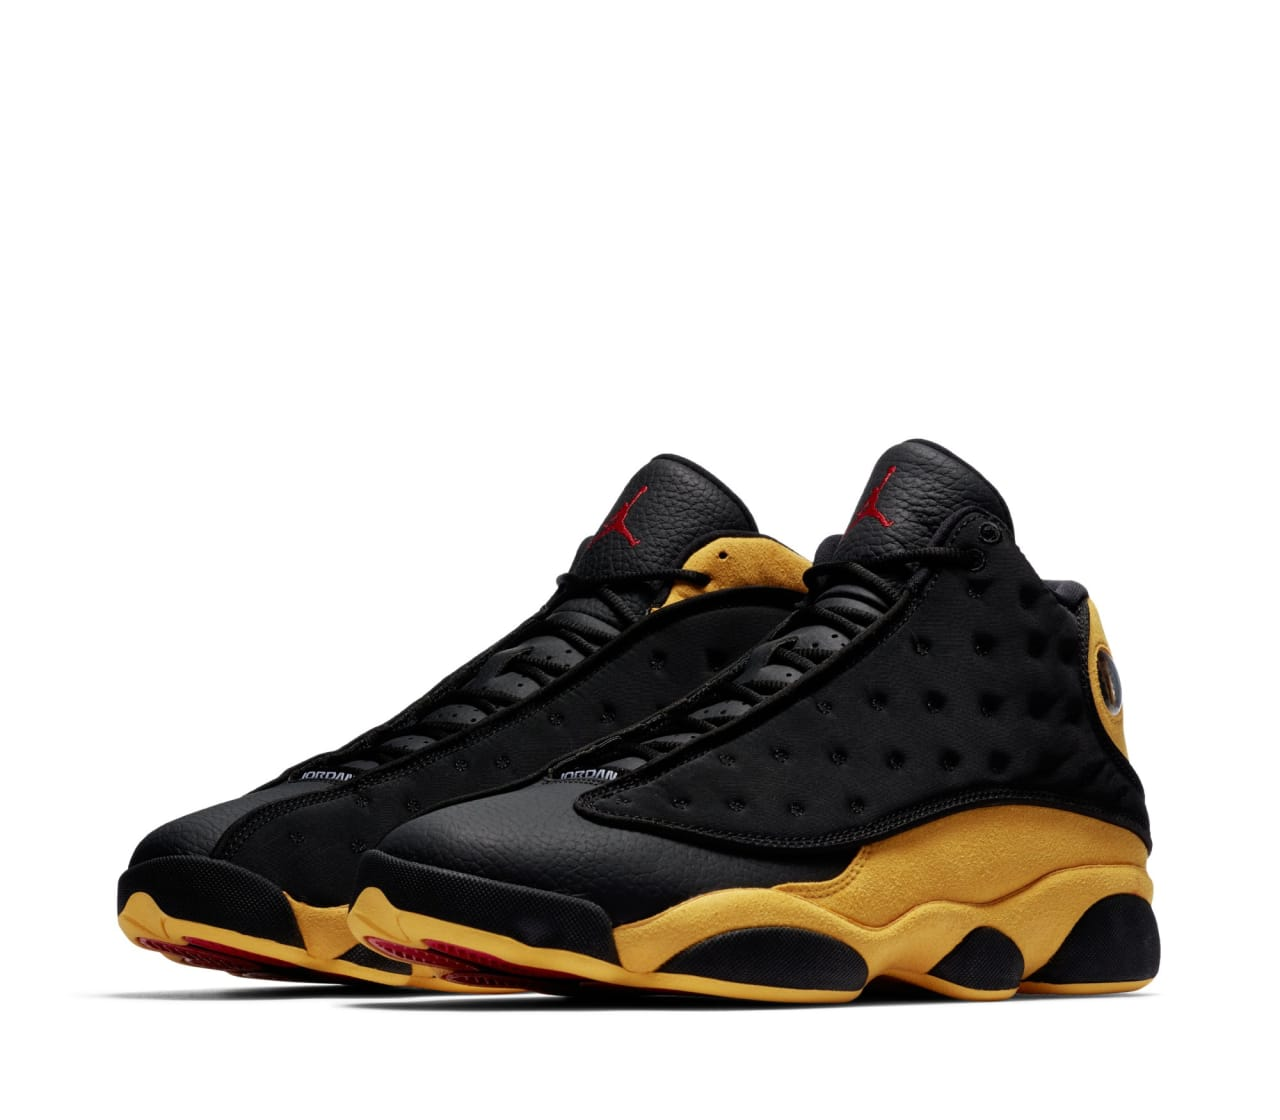 8a102ca24b8 Air Jordan 13 Carmelo Anthony 'Class of 2002' Release Canceled | Sole  Collector